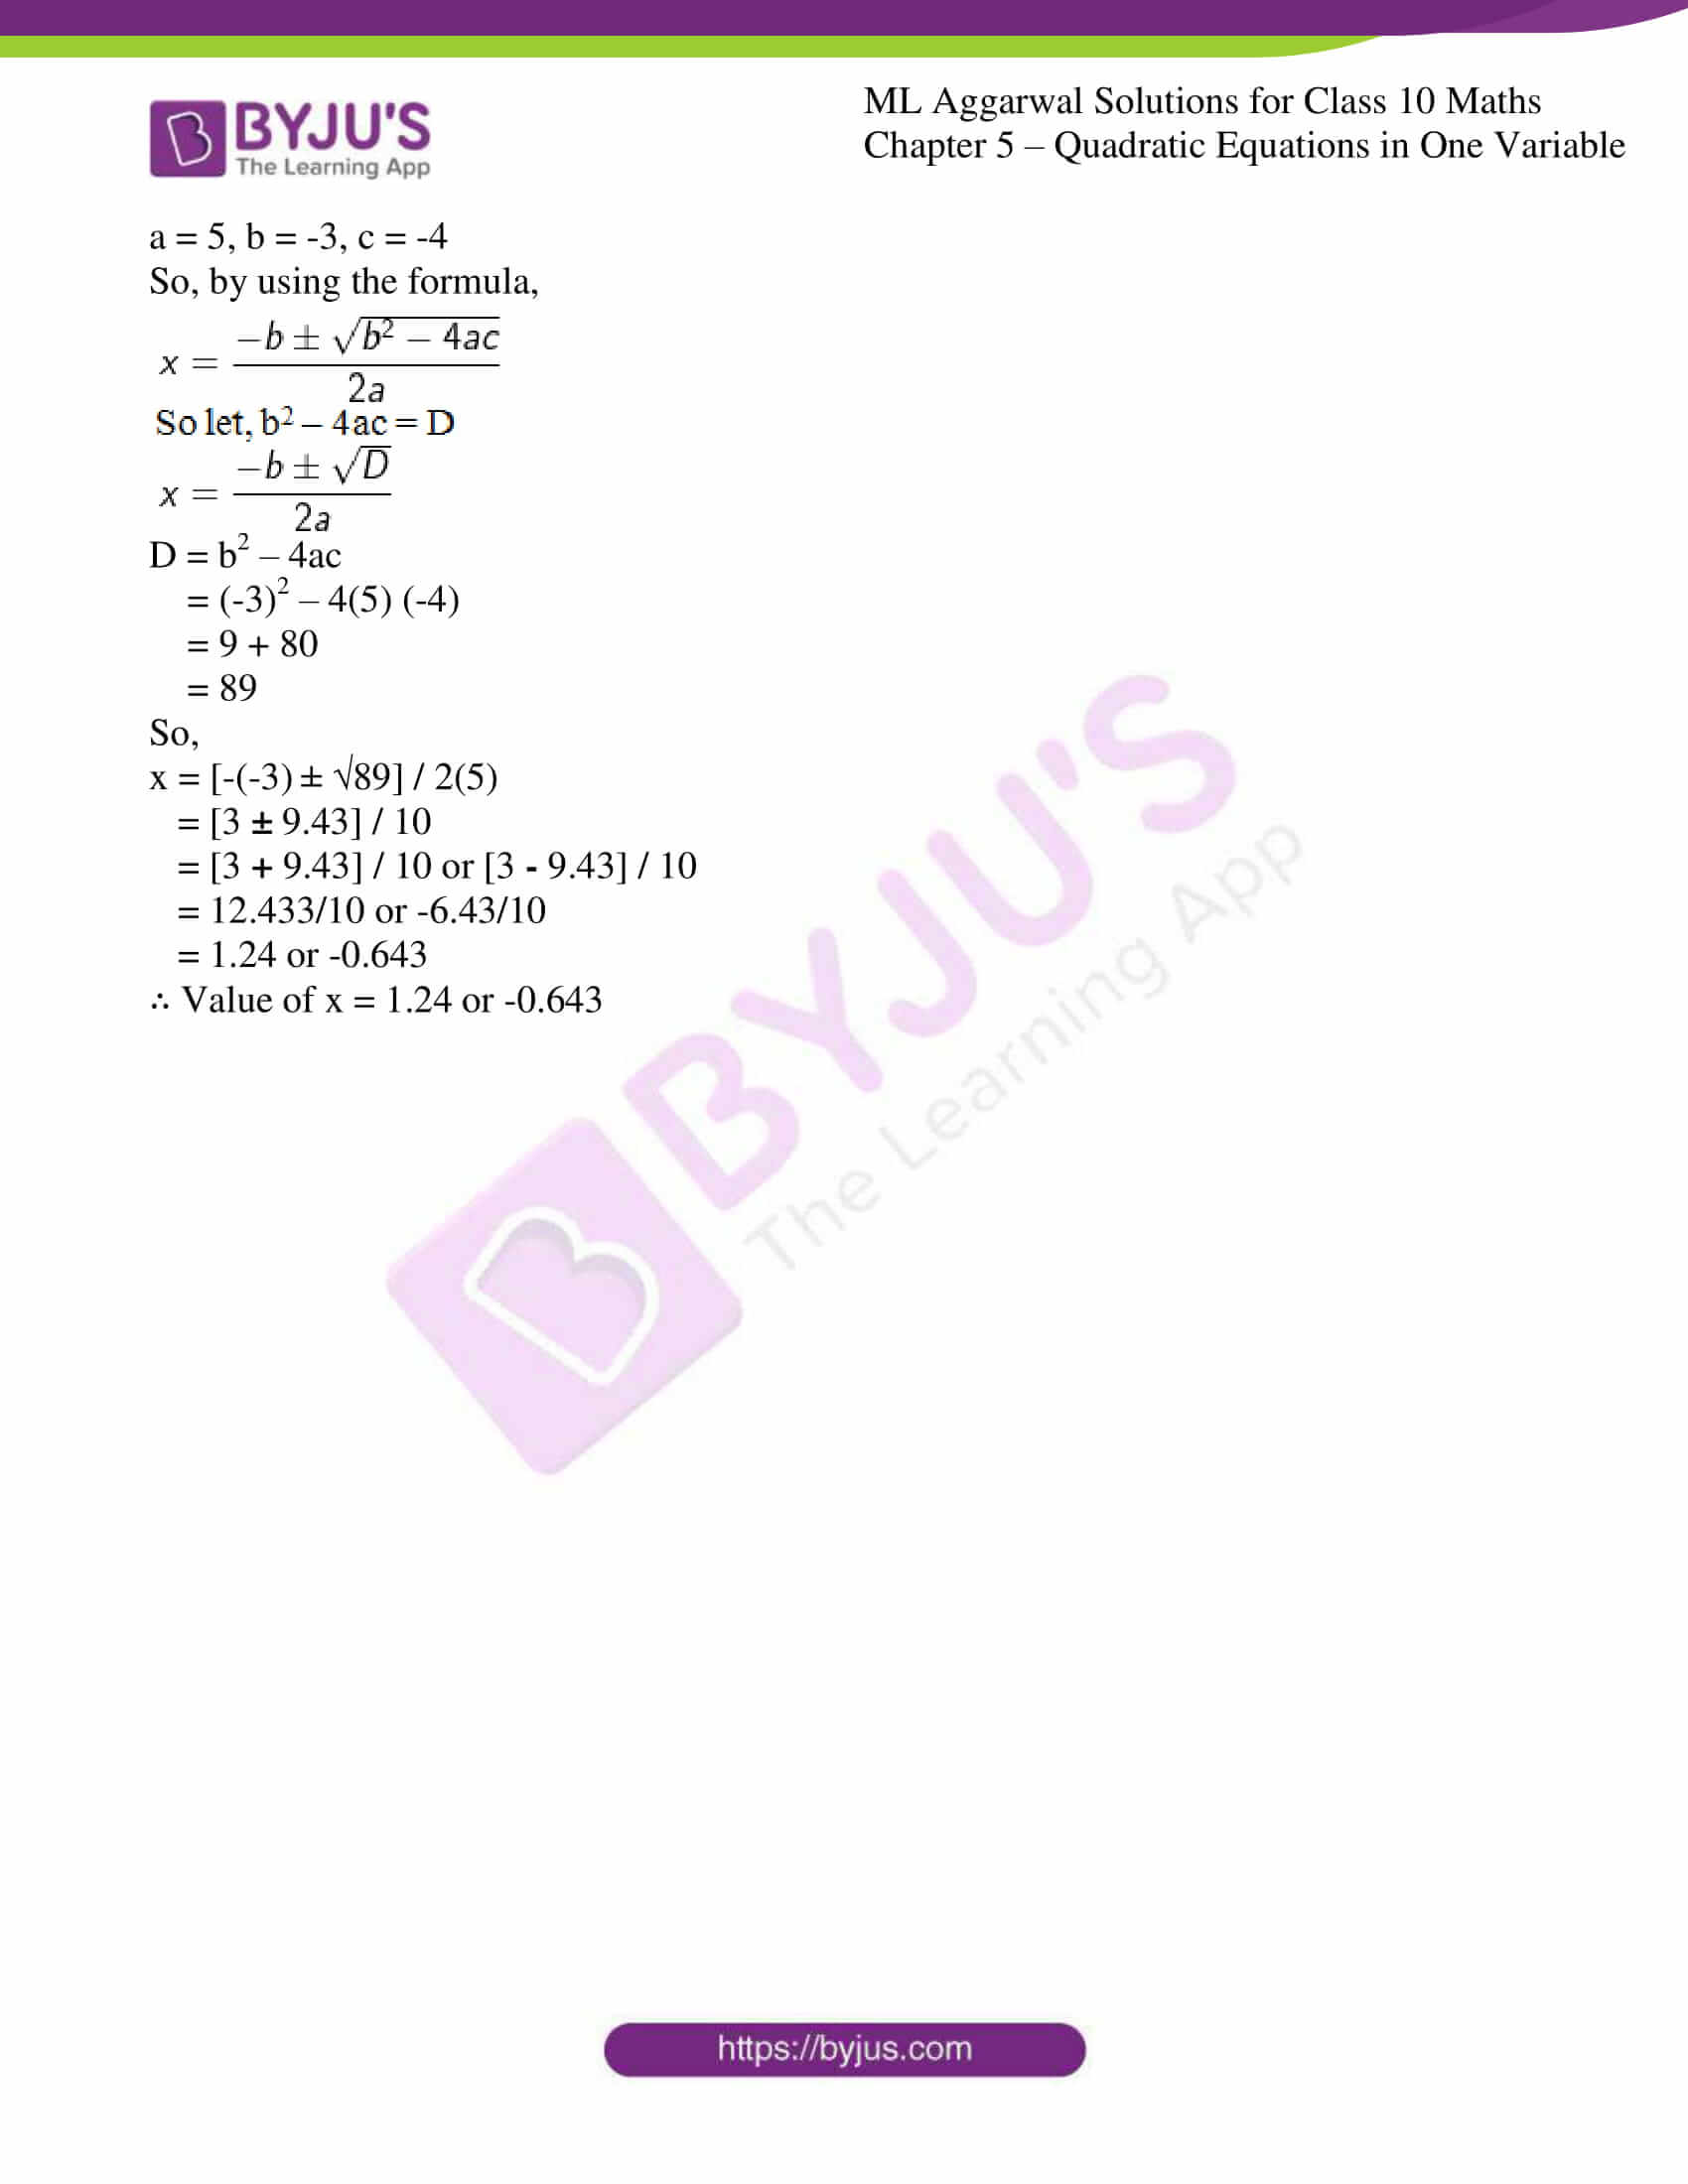 ml aggarwal solutions class 10 maths chapter 5 32